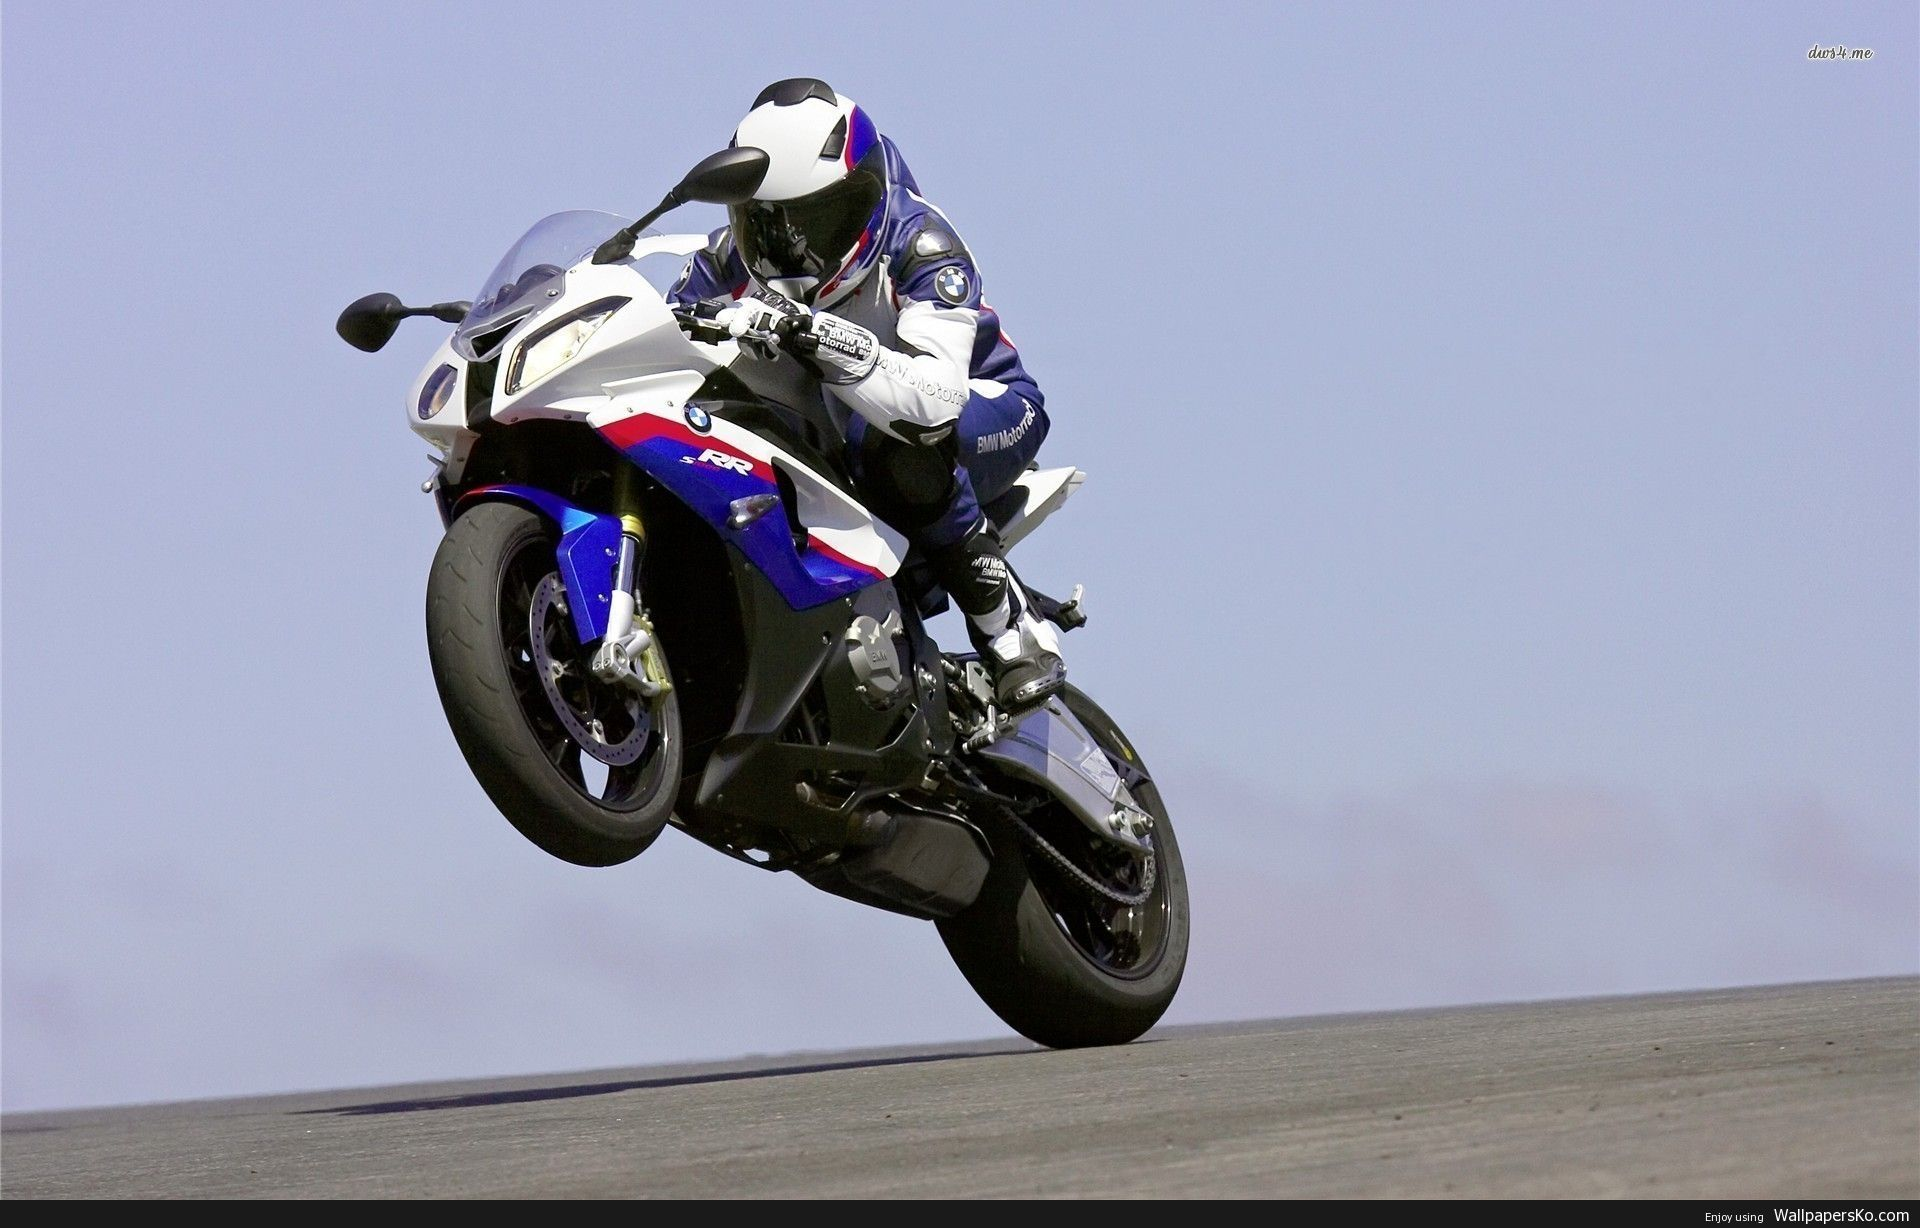 S1000rr Wallpaper Http Wallpapersko Com S1000rr Wallpaper Html